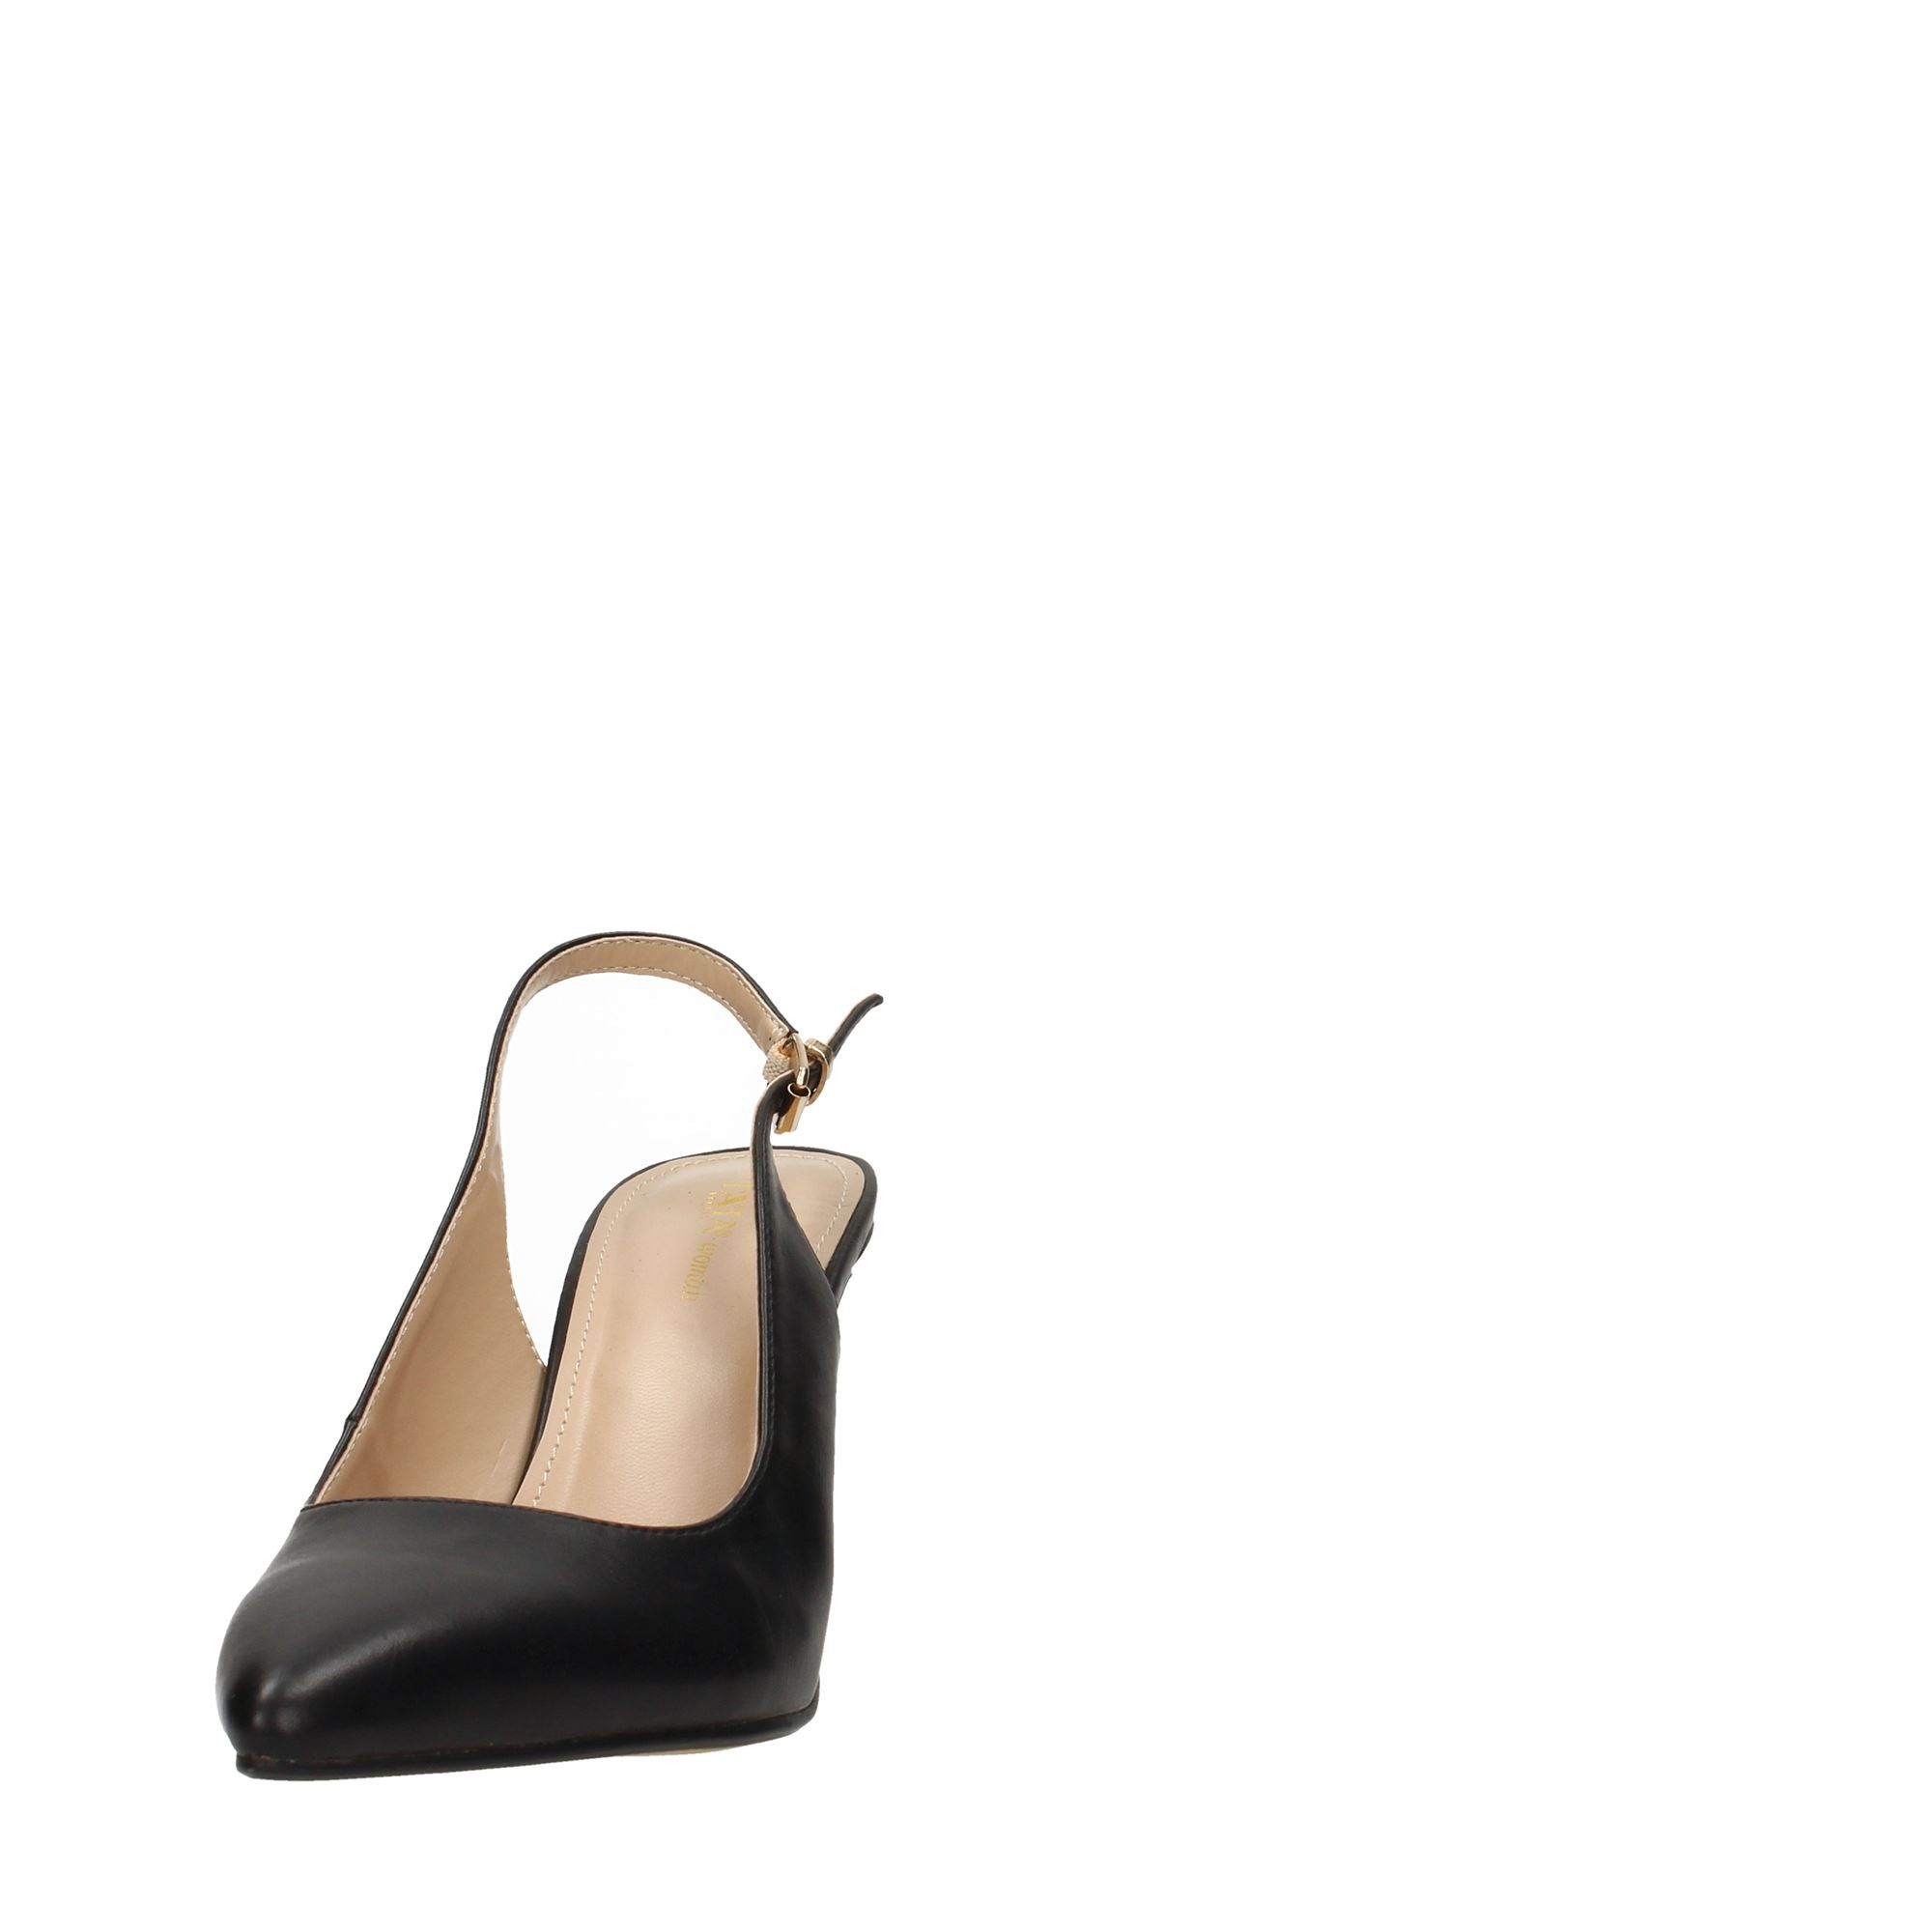 Tata Italia Shoes Woman Décolleté Black 9556A-10